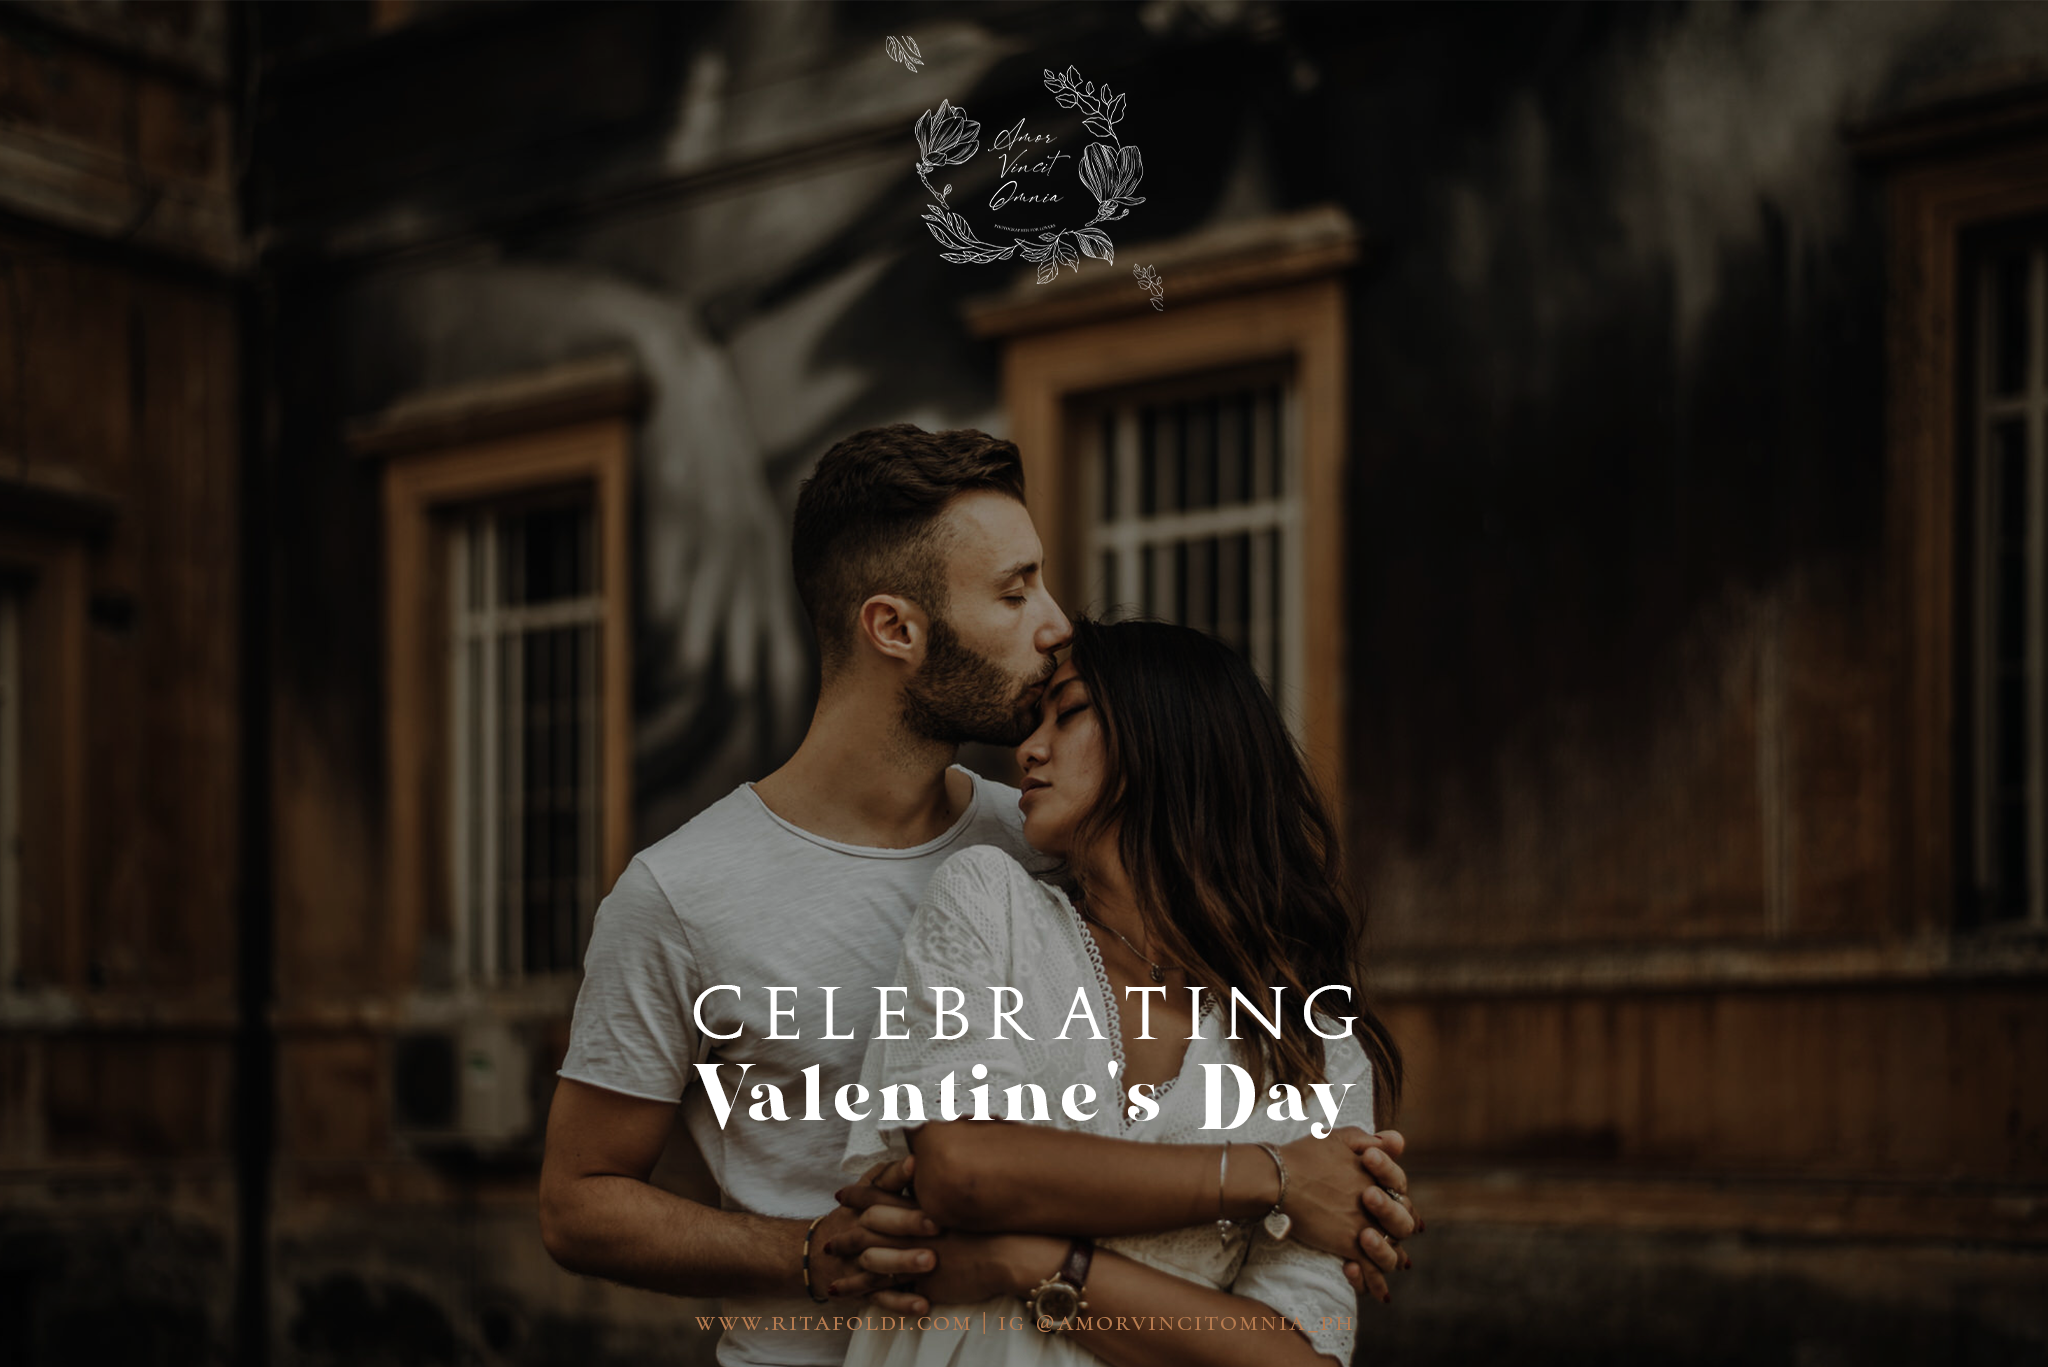 Couple photoshoot in Rome to celebrate Valentine's Day